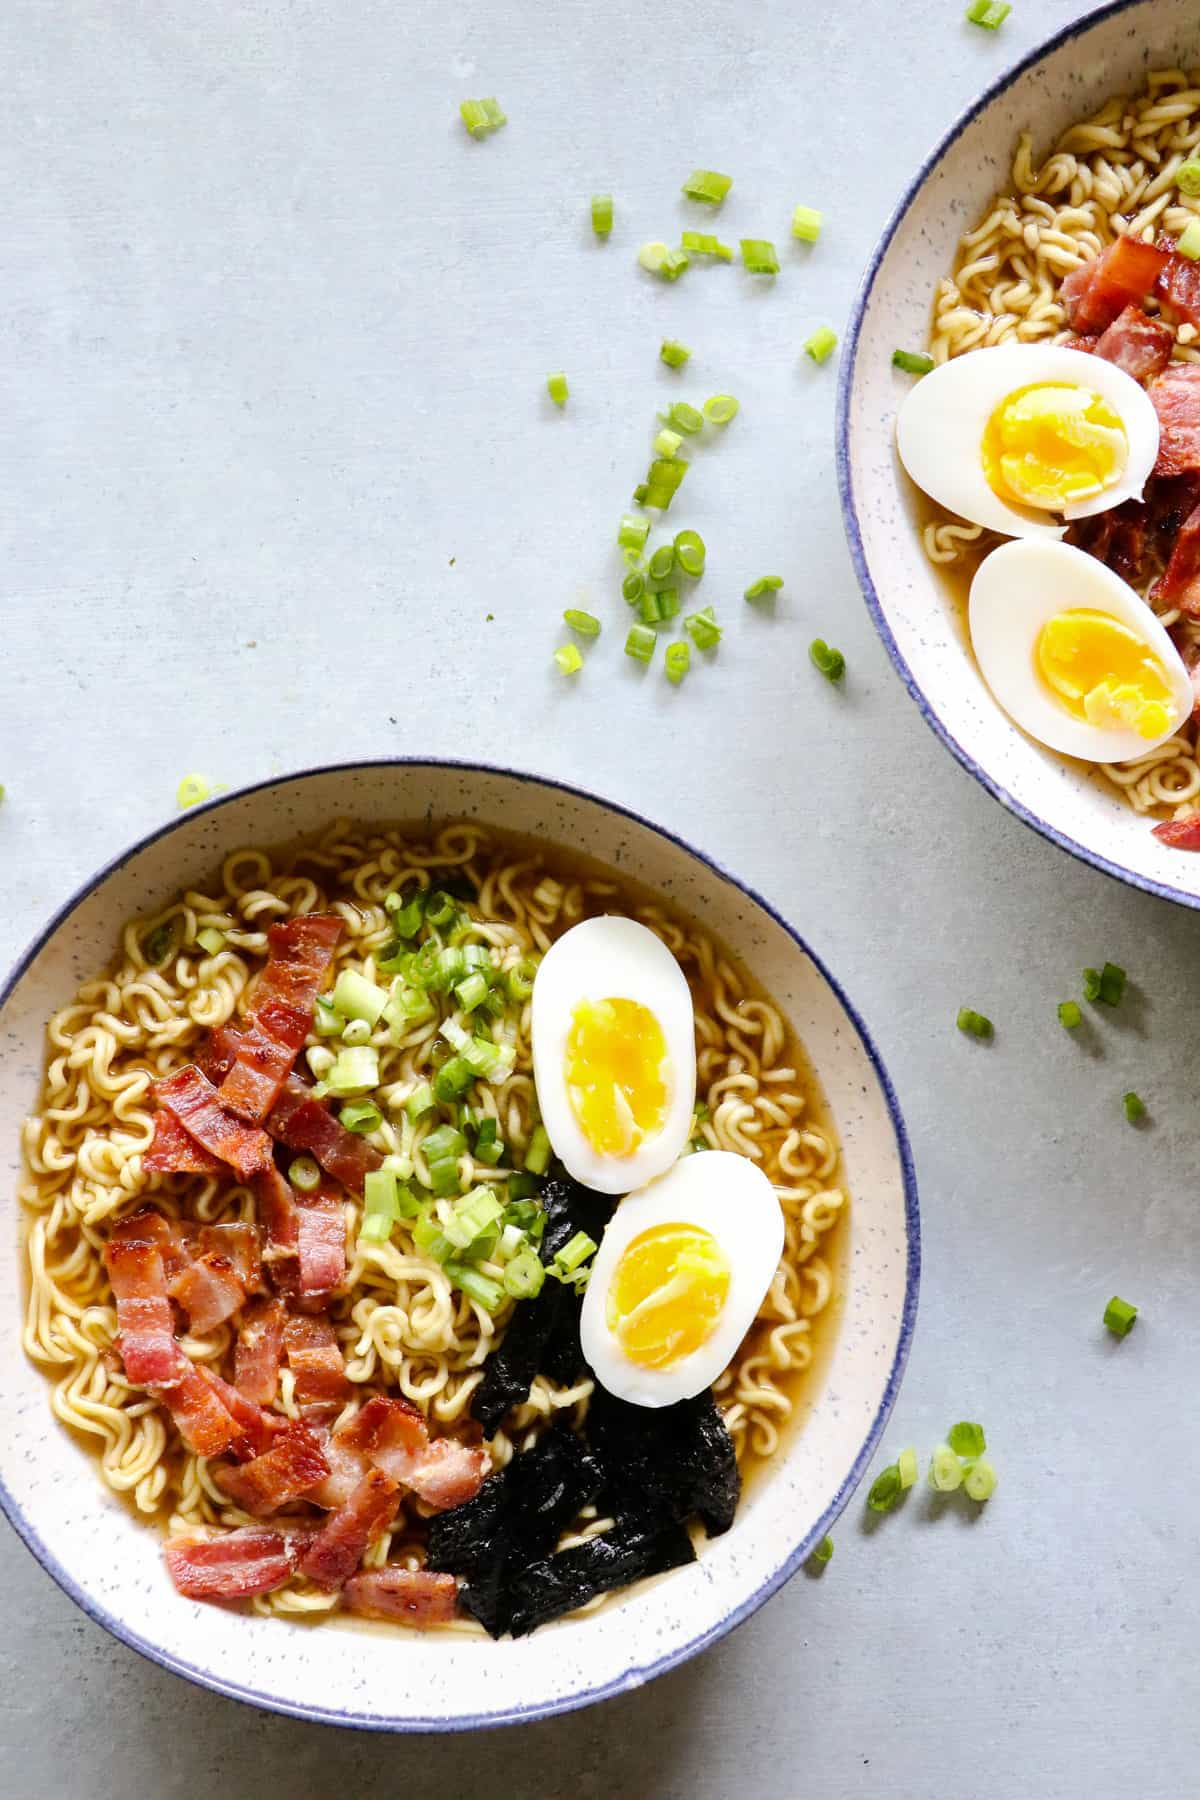 Homemade Ramen. This homemade broth is simple to make yet bold and flavorful. Perfect for pouring over some ramen noodles and loading up with your favorite toppings for an easy dinner.